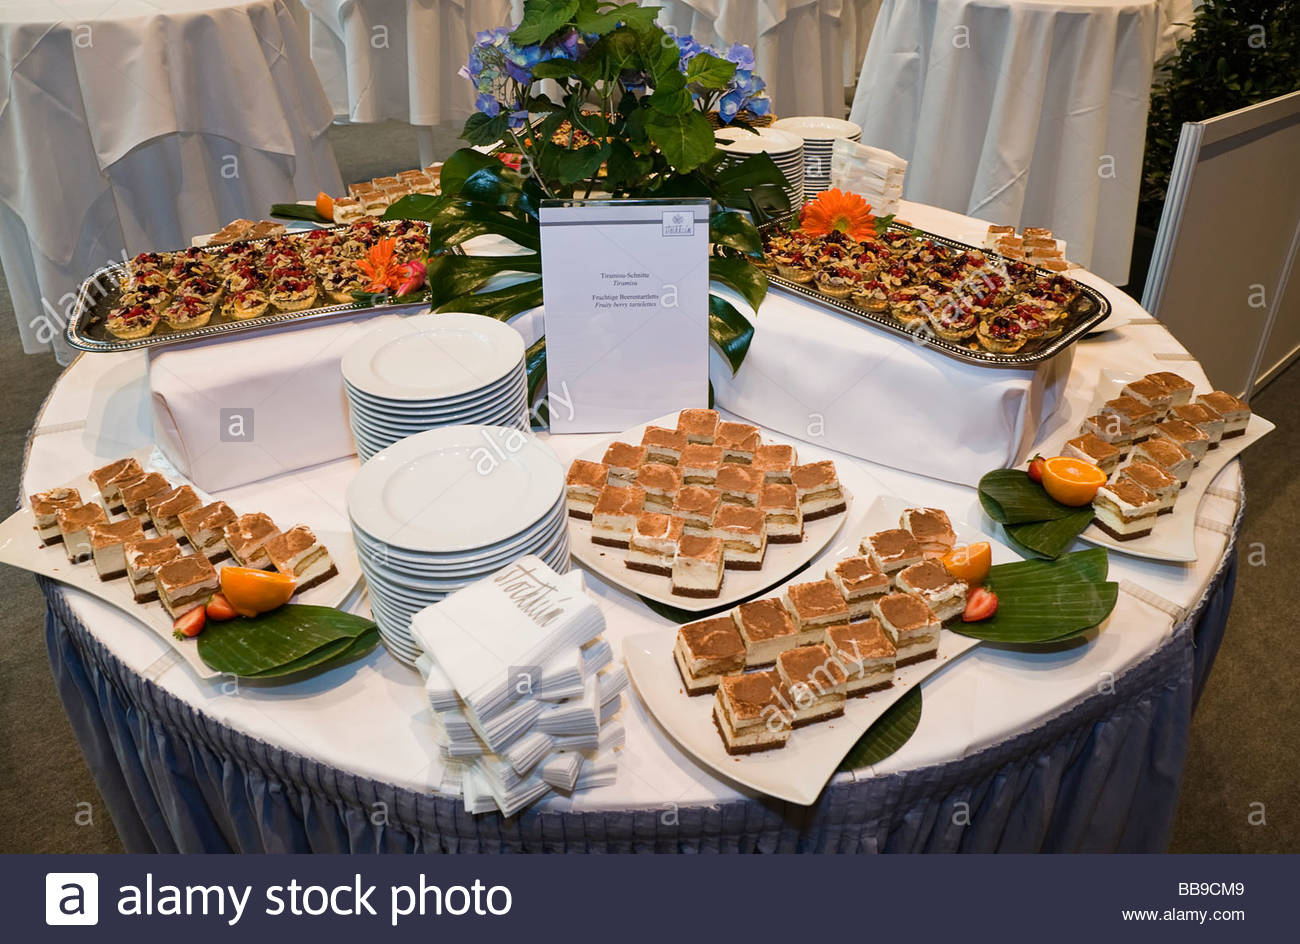 dessert buffet table food tiramisu fruit cookies eating canape stock photo 24179129 alamy. Black Bedroom Furniture Sets. Home Design Ideas